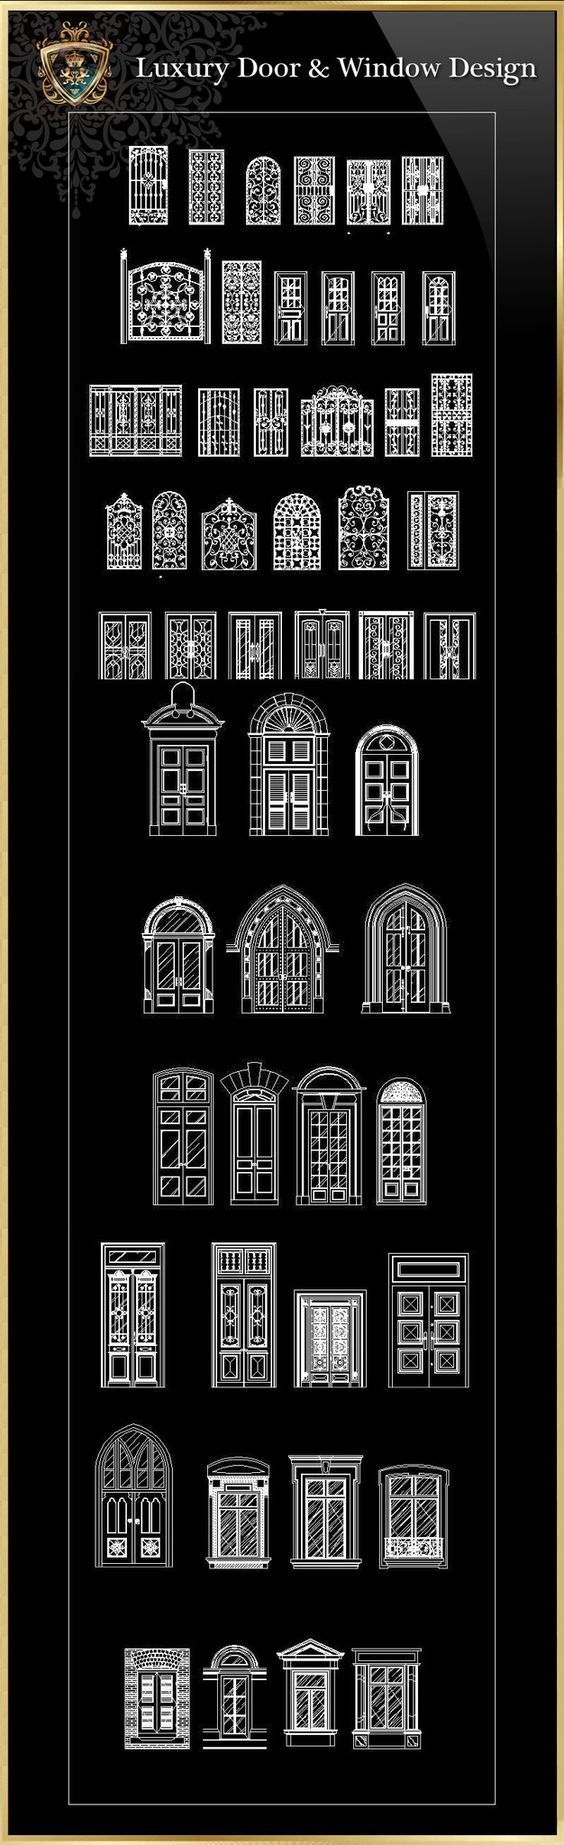 Unique Royal Architecture Door u Window Design u CAD Design Free CAD Blocks Drawings Perspektivisches ZeichnenKlassische